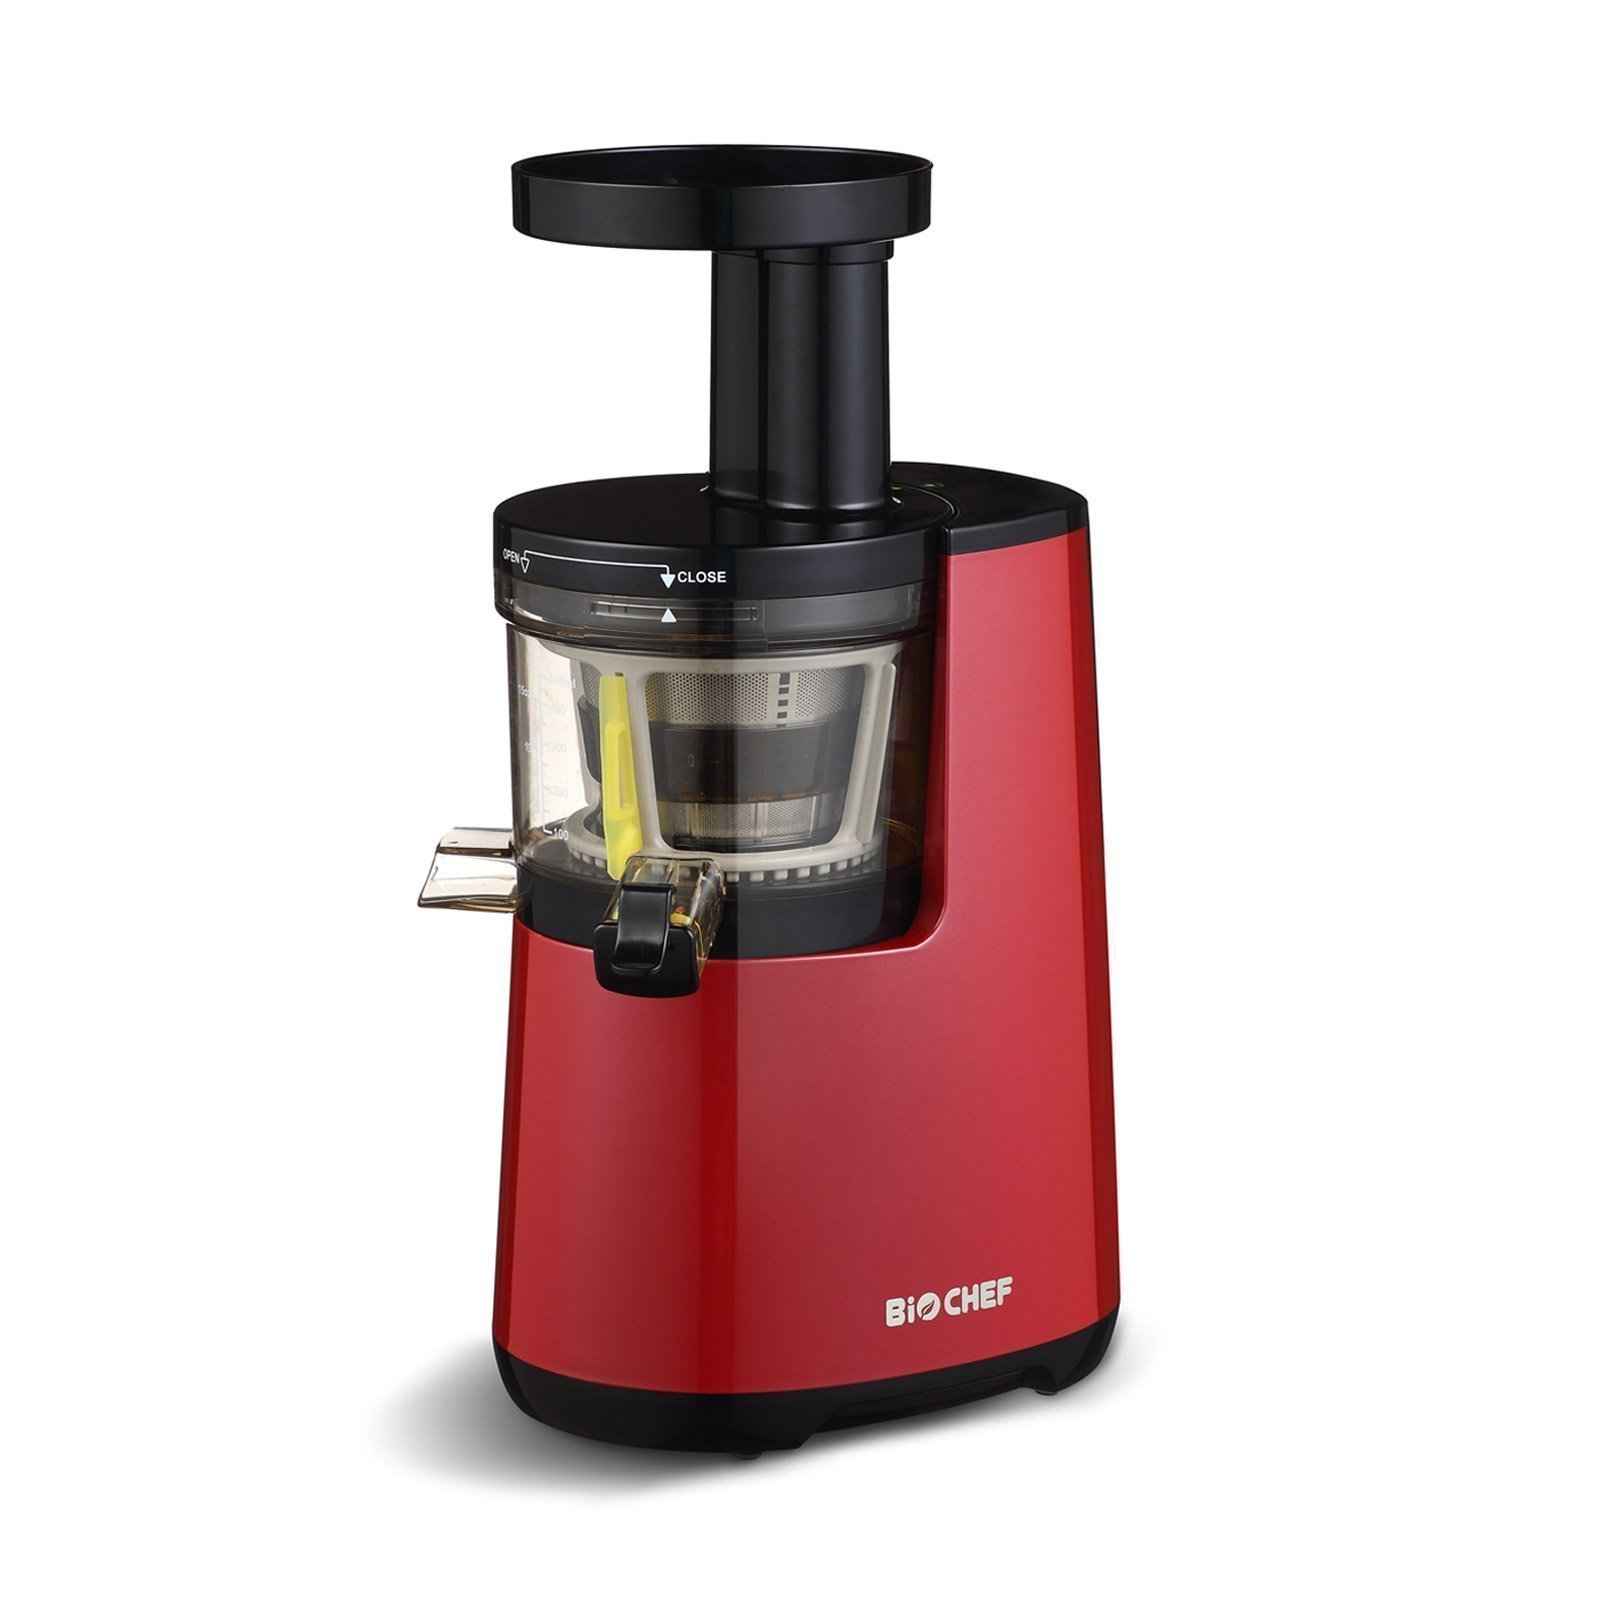 Slow Juicer Oxone Ox 875 : NEW BioChef Atlas Cold Press Slow Fruit Juicer - Red eBay